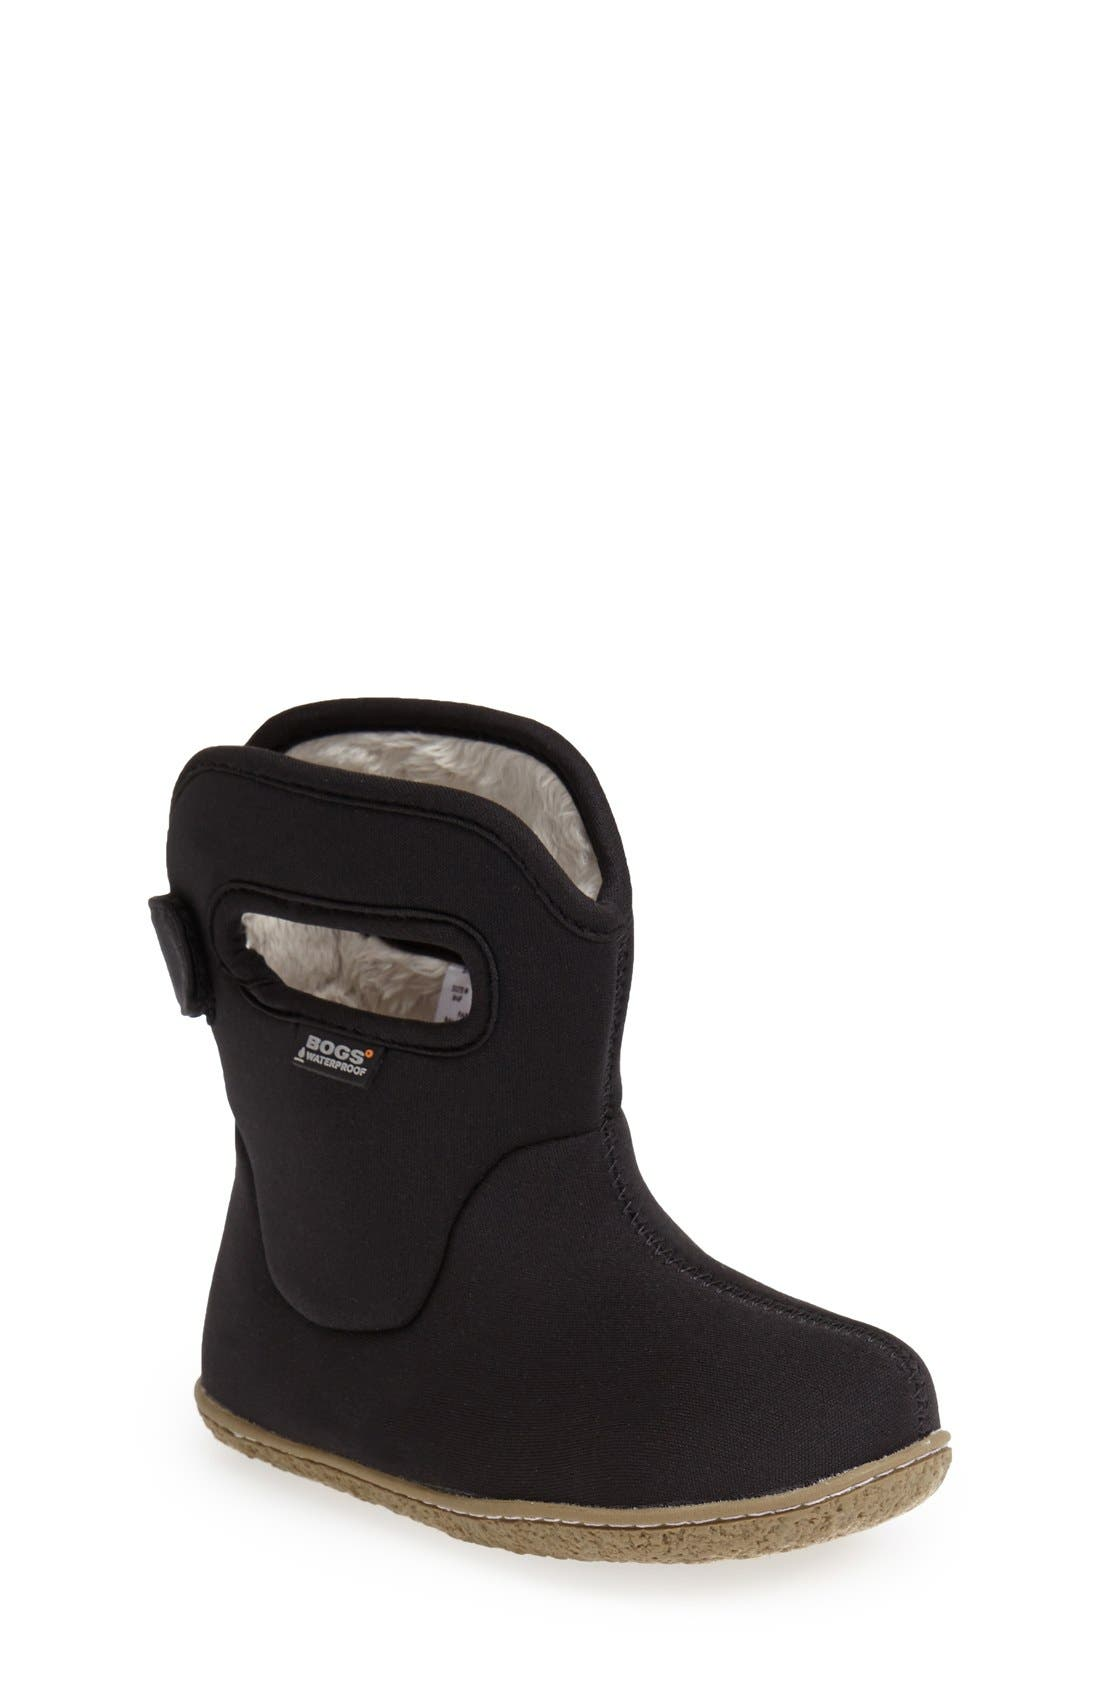 Toddler Bogs Baby Bogs Insulated Waterproof Rain Boot Size 5 M  Black